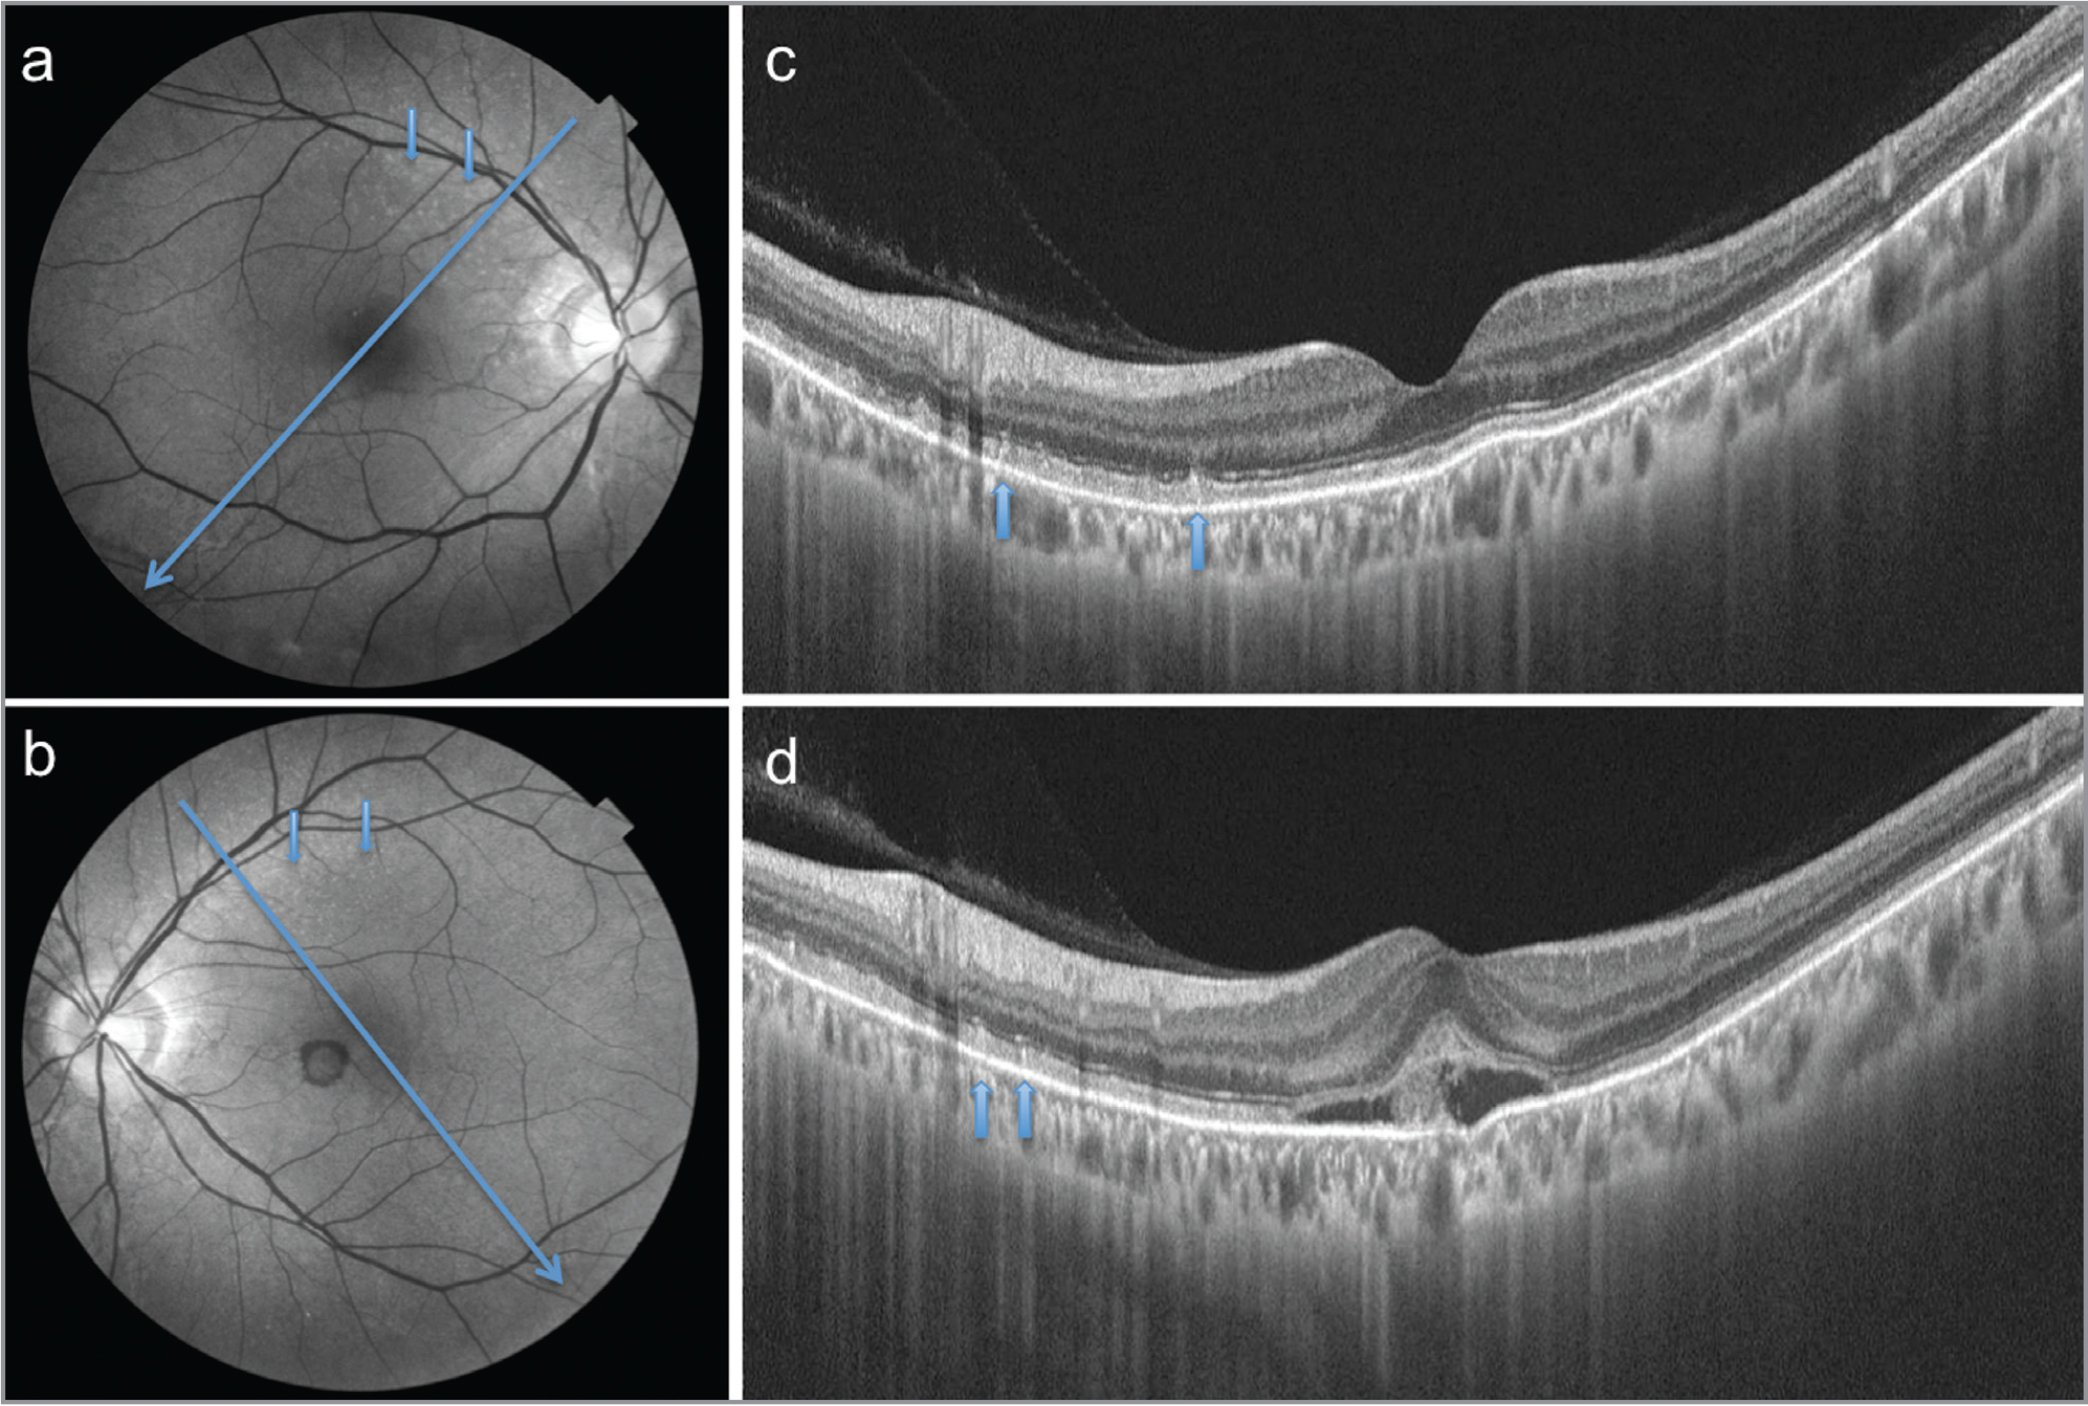 Red-free photographs of the same patient of the right (a) and the left (b) eyes showing reticular pseudodrusen (RPD) as bright dots (small arrows). Large arrows indicate position of optical coherence tomography (OCT) scans. Swept-source OCT scans of the right (c) and the left (d) eyes show RPD (arrows) as triangular depositions above the retinal pigment epithelium. The left eye has a choroidal neovascularization at the fovea.